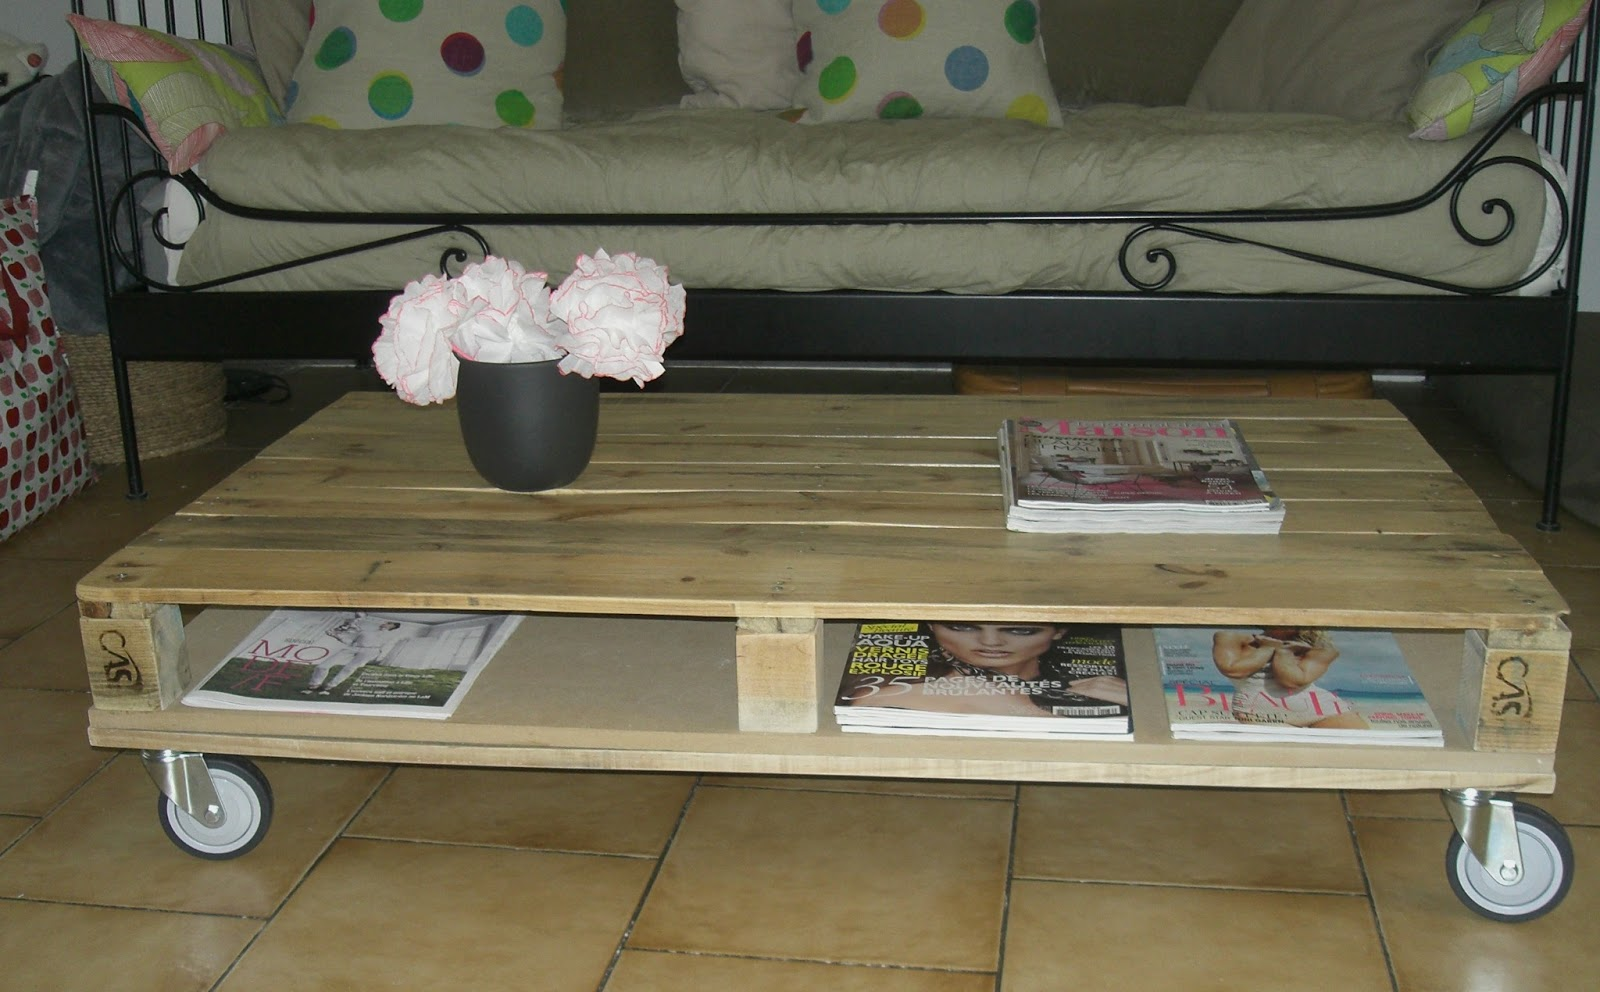 Gabulle in wonderland transformer une palette en table basse - Comment faire une table basse en palette ...